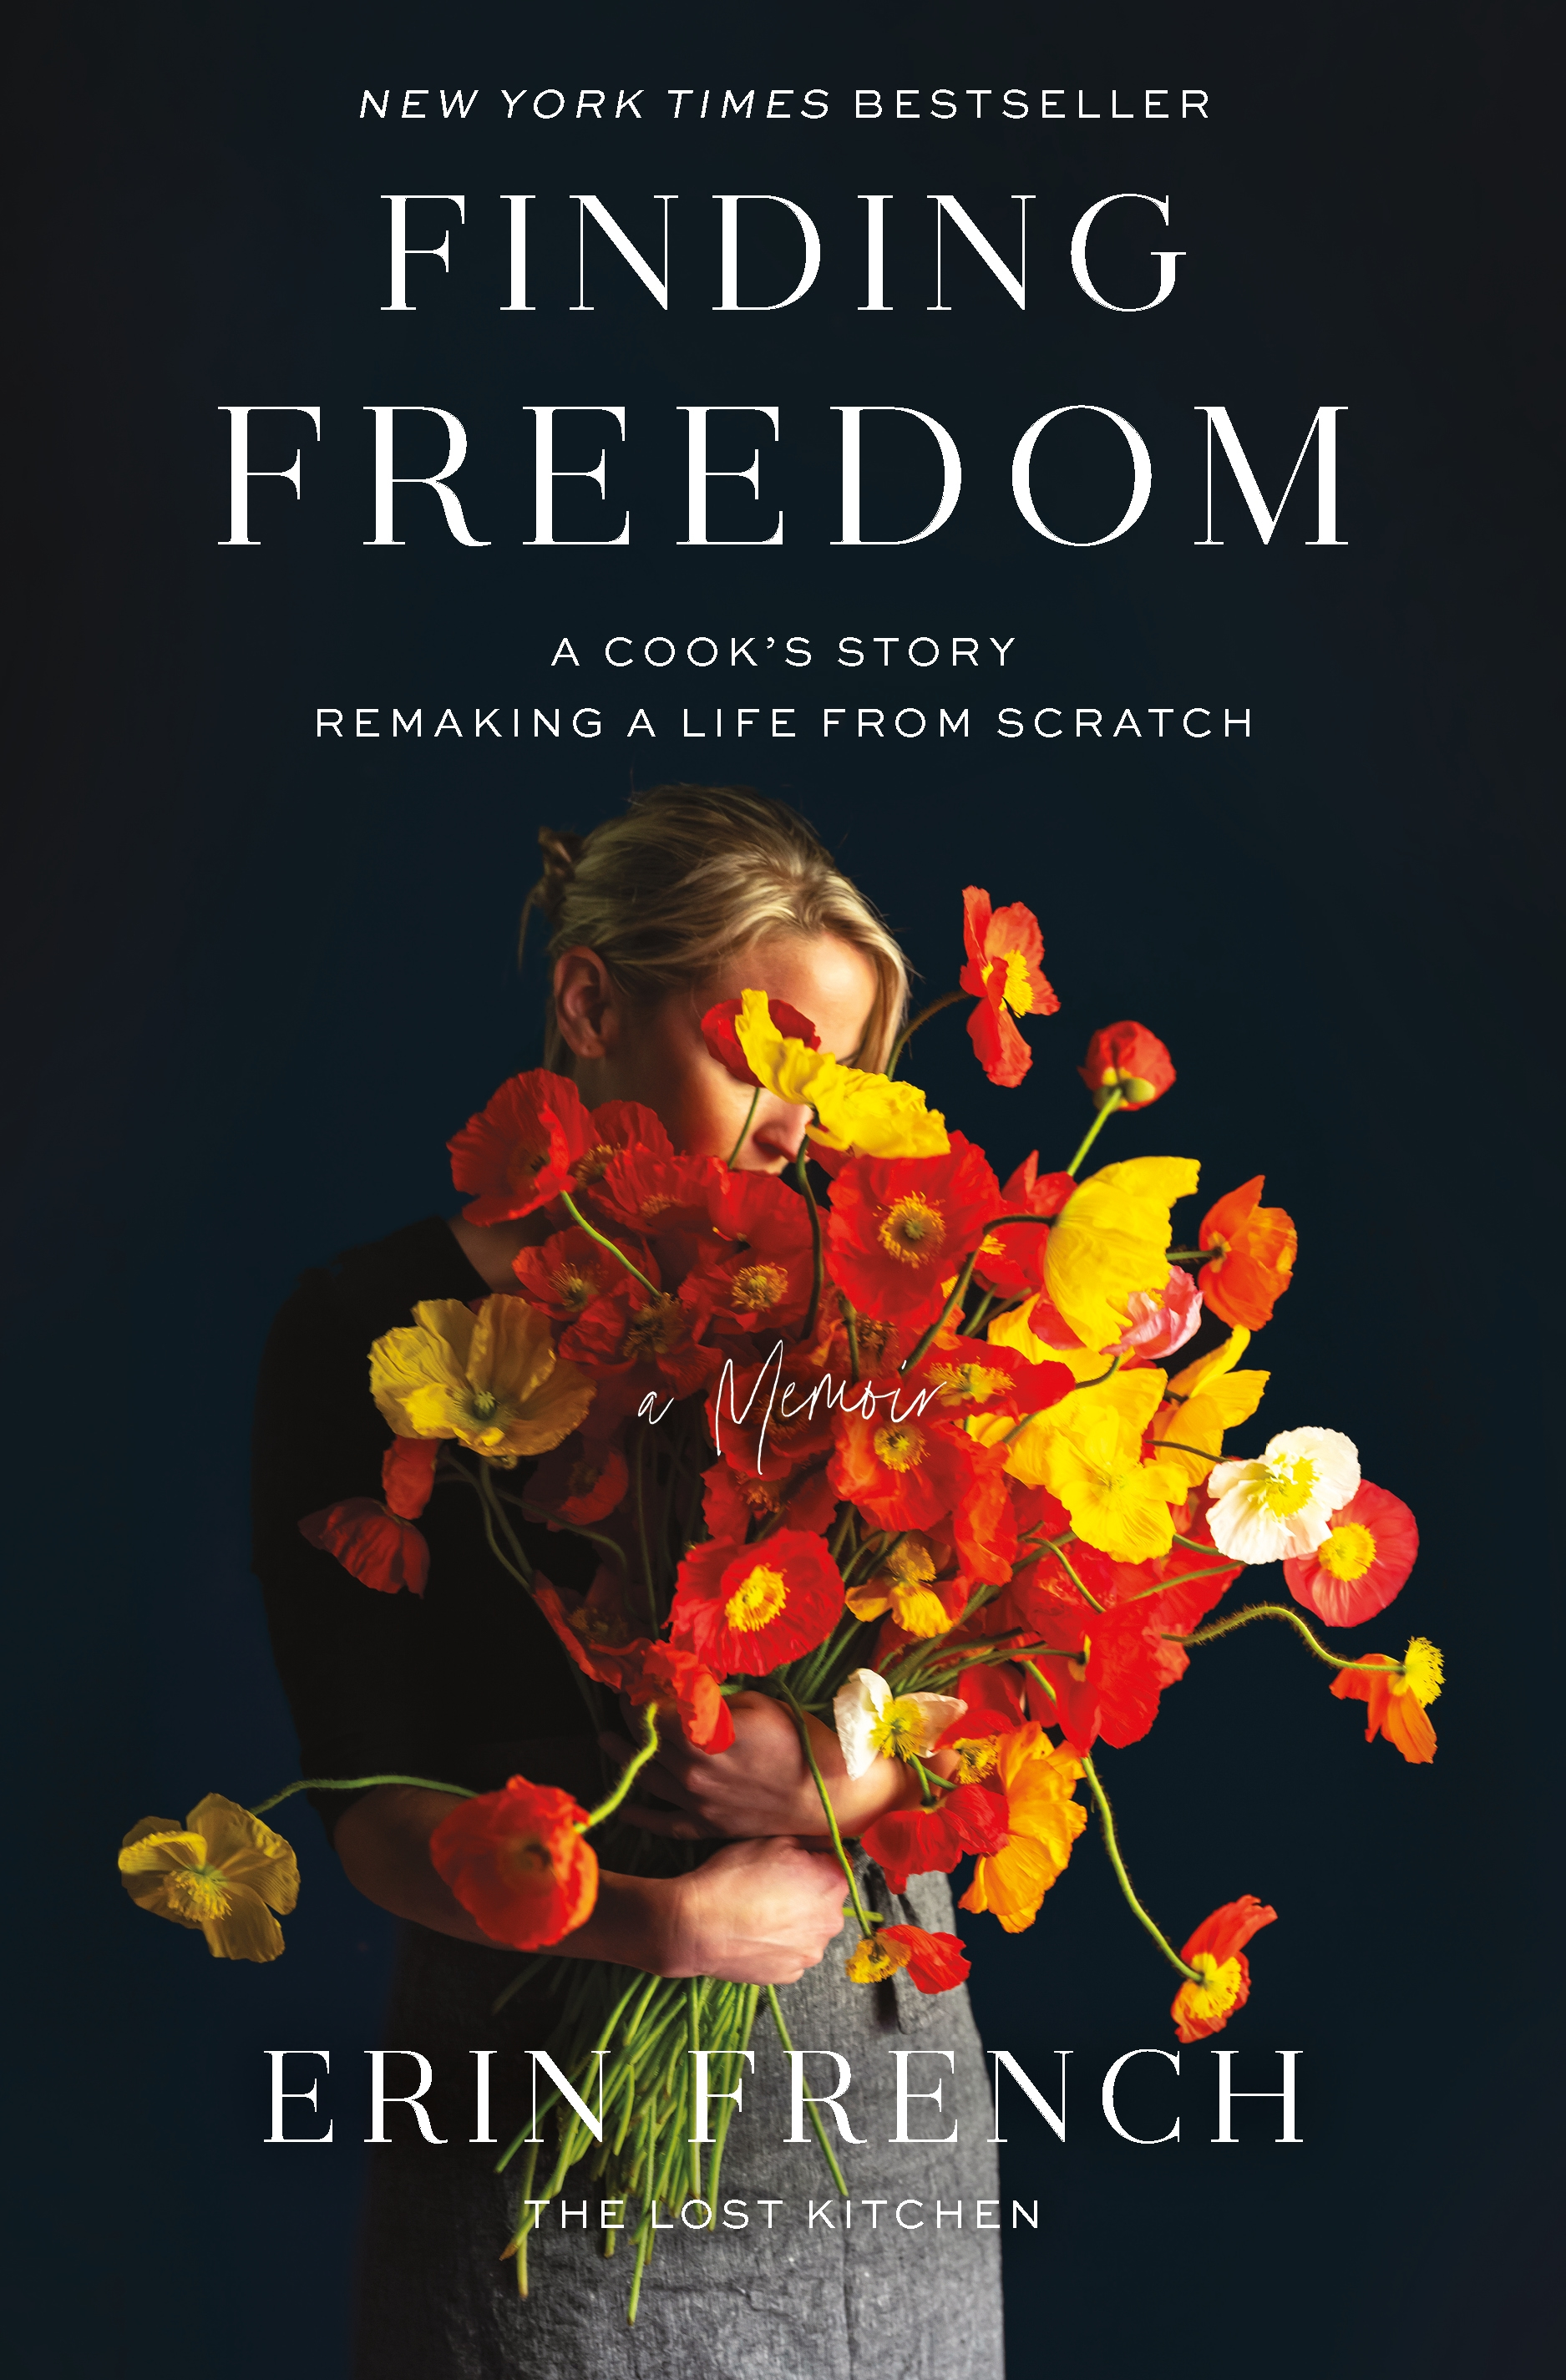 Finding Freedom A Cook's Story; Remaking a Life from Scratch